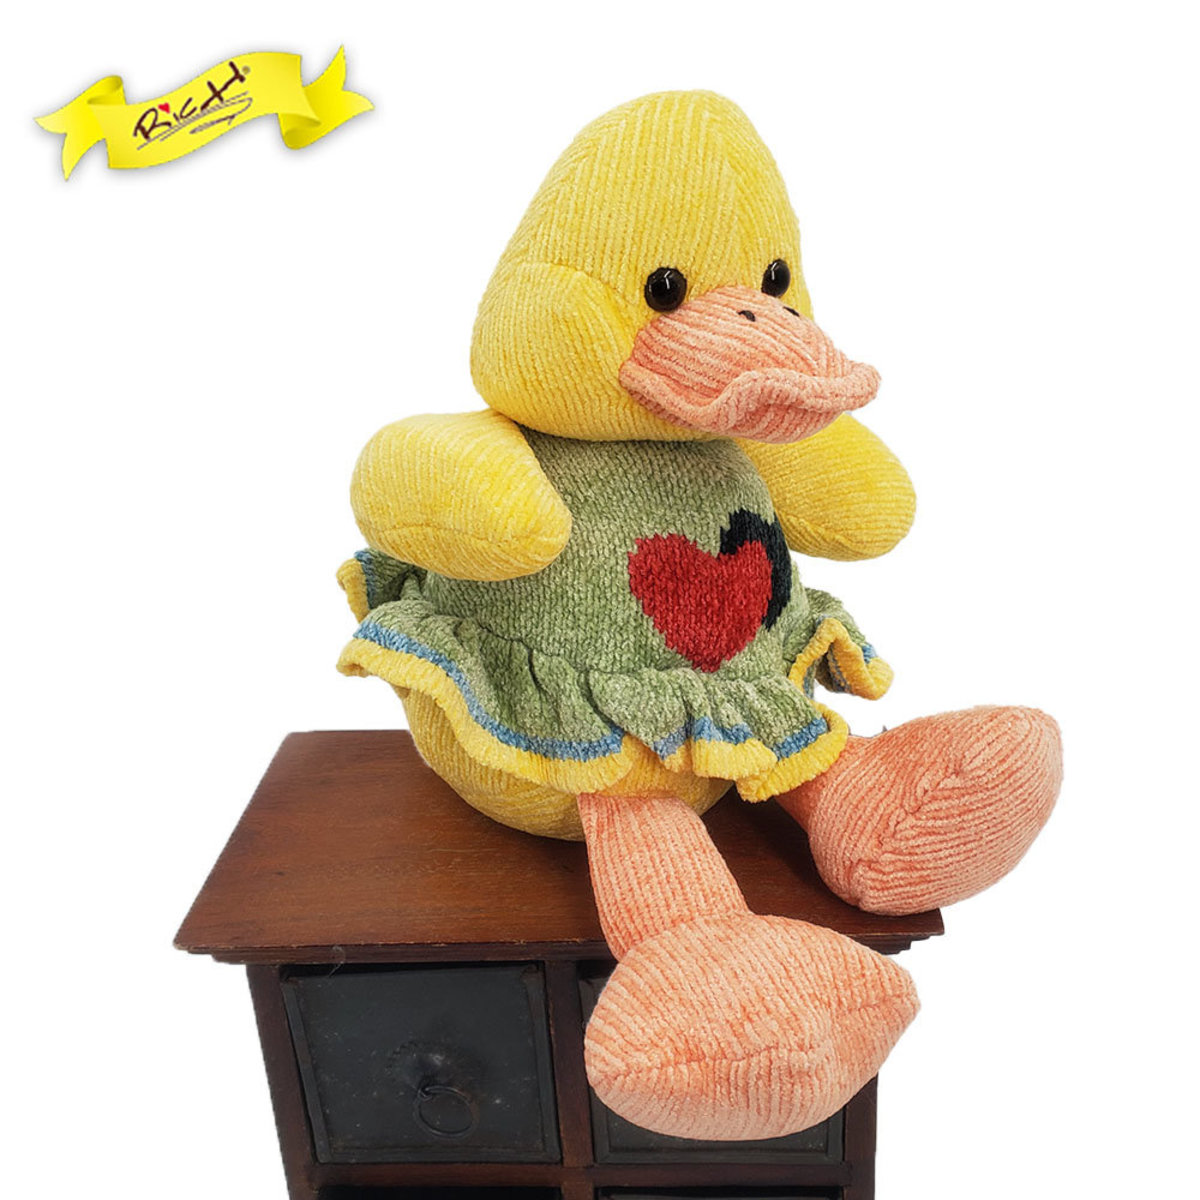 Color Rich - Chenille Knitted Ducky with Dress